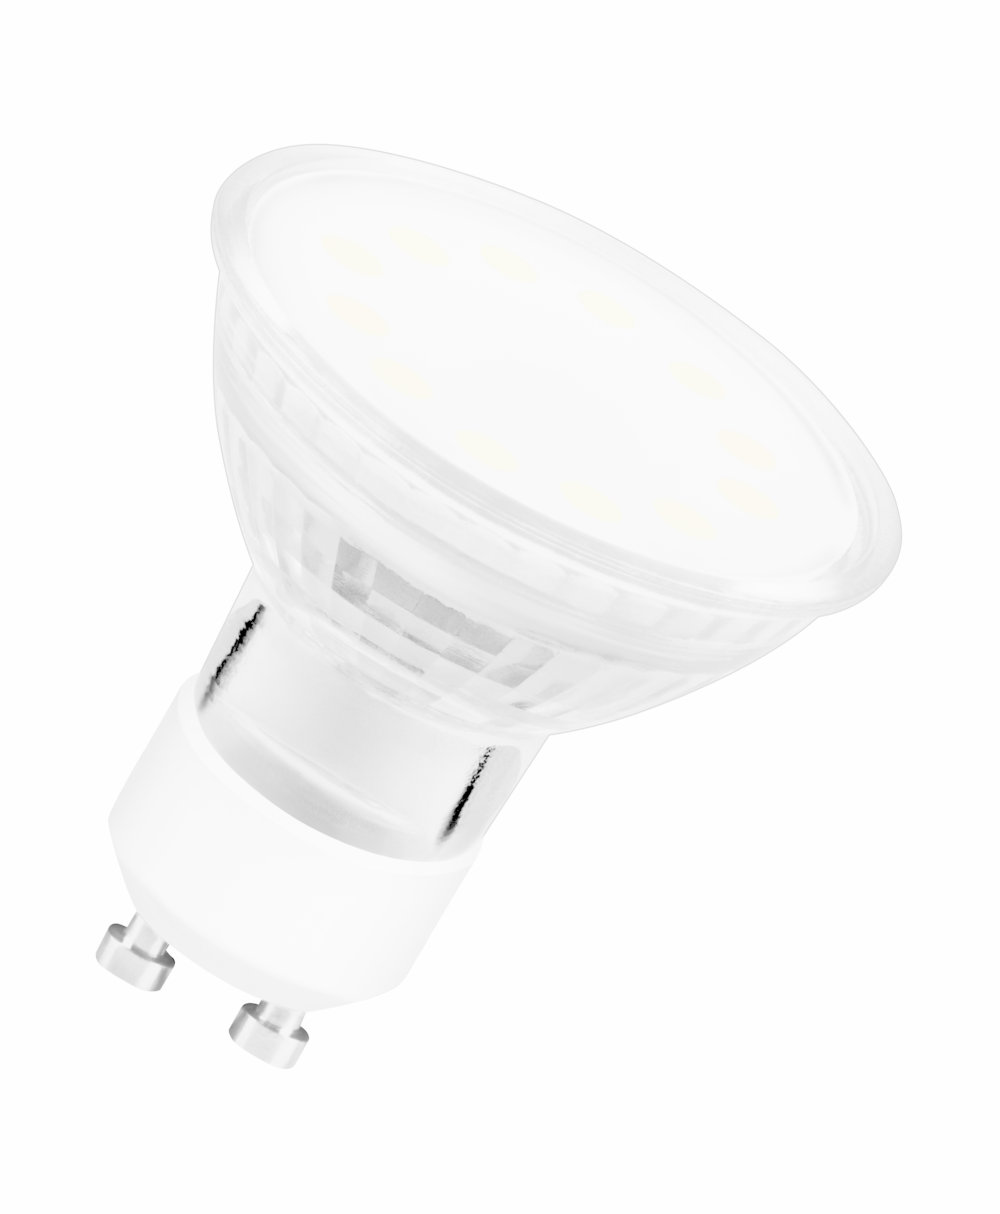 PAR16 35W for LED Downlight and LED SPOT